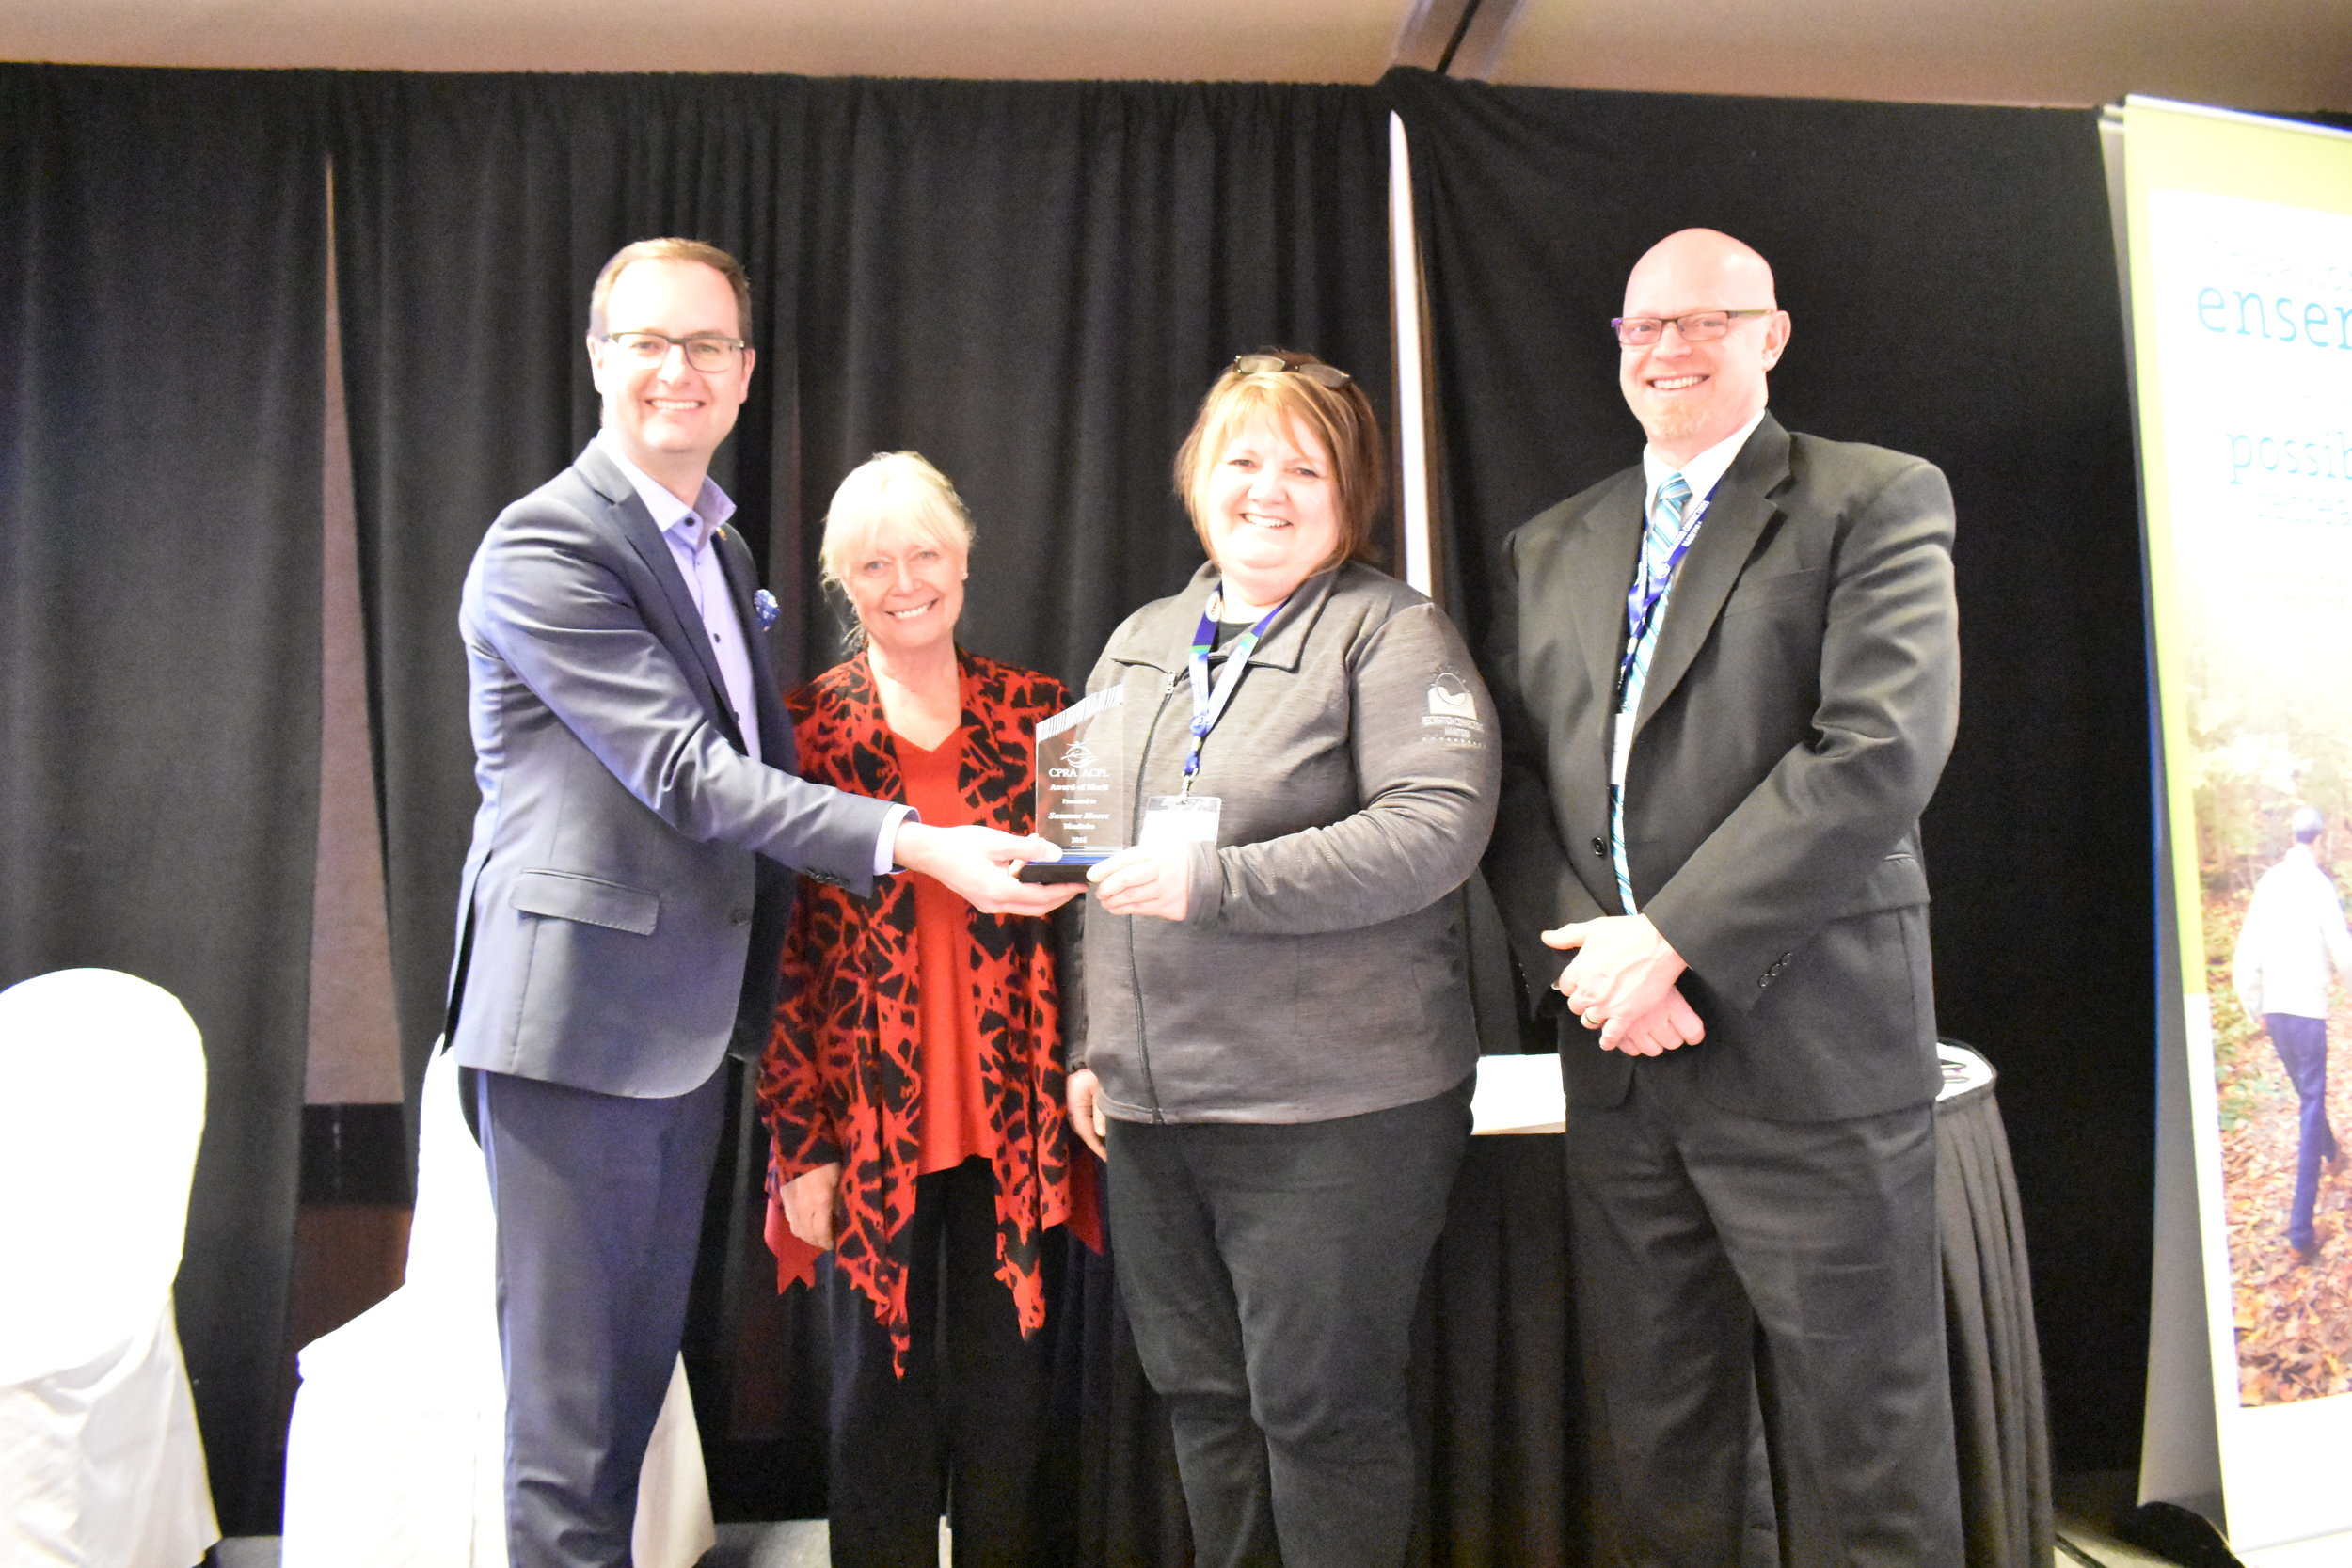 2016 CPRA Award of Merit recipient Susanne Moore, Manitoba with CPRA Board representative Ron Epp (r) and RCM Board Members